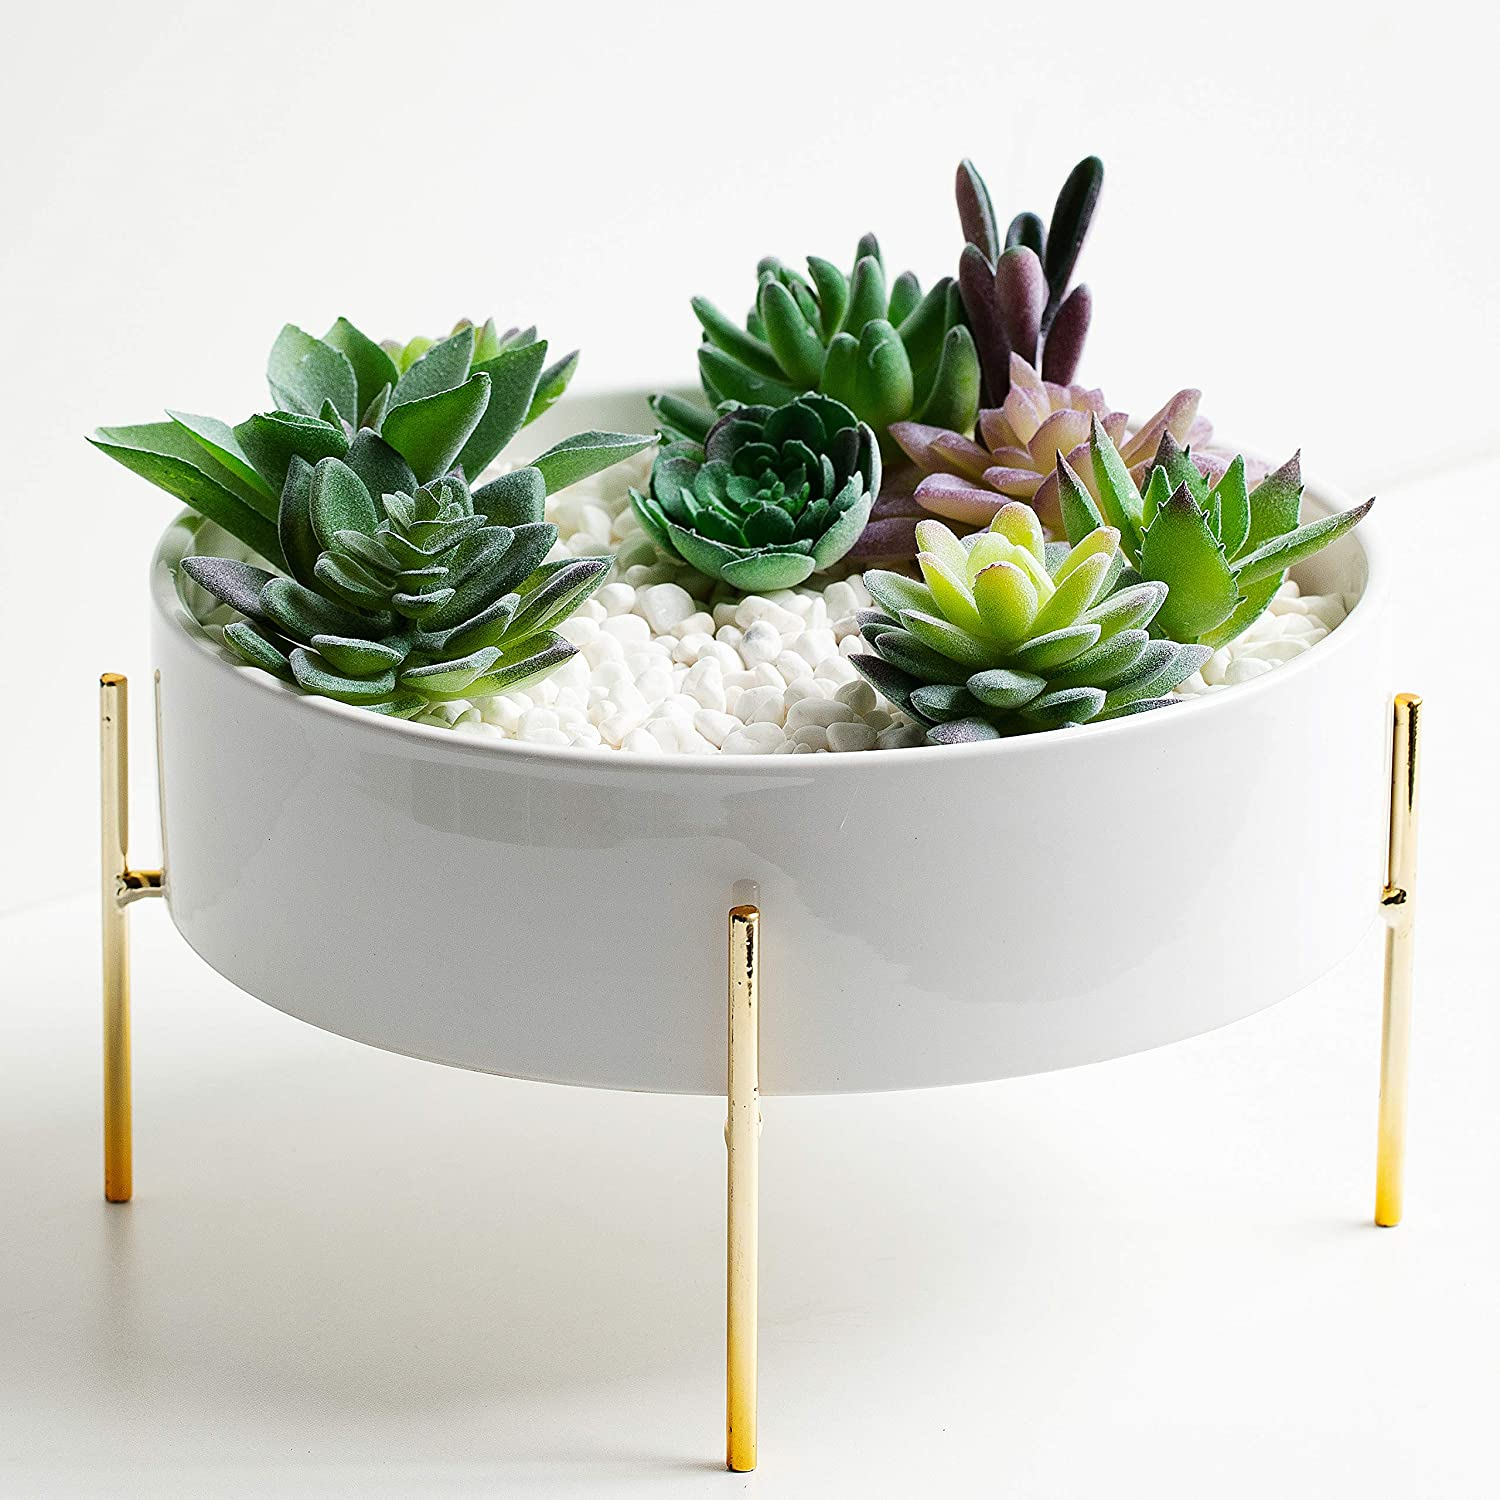 Kimisty 10 Inch Large Round Succulent Planter Bowl with Gold Metal Plant Stand, White Ceramic Pot with Drainage, Succulent Garden Shallow Pot, Centerpiece Tabletop, Includes Decorative Pebbles